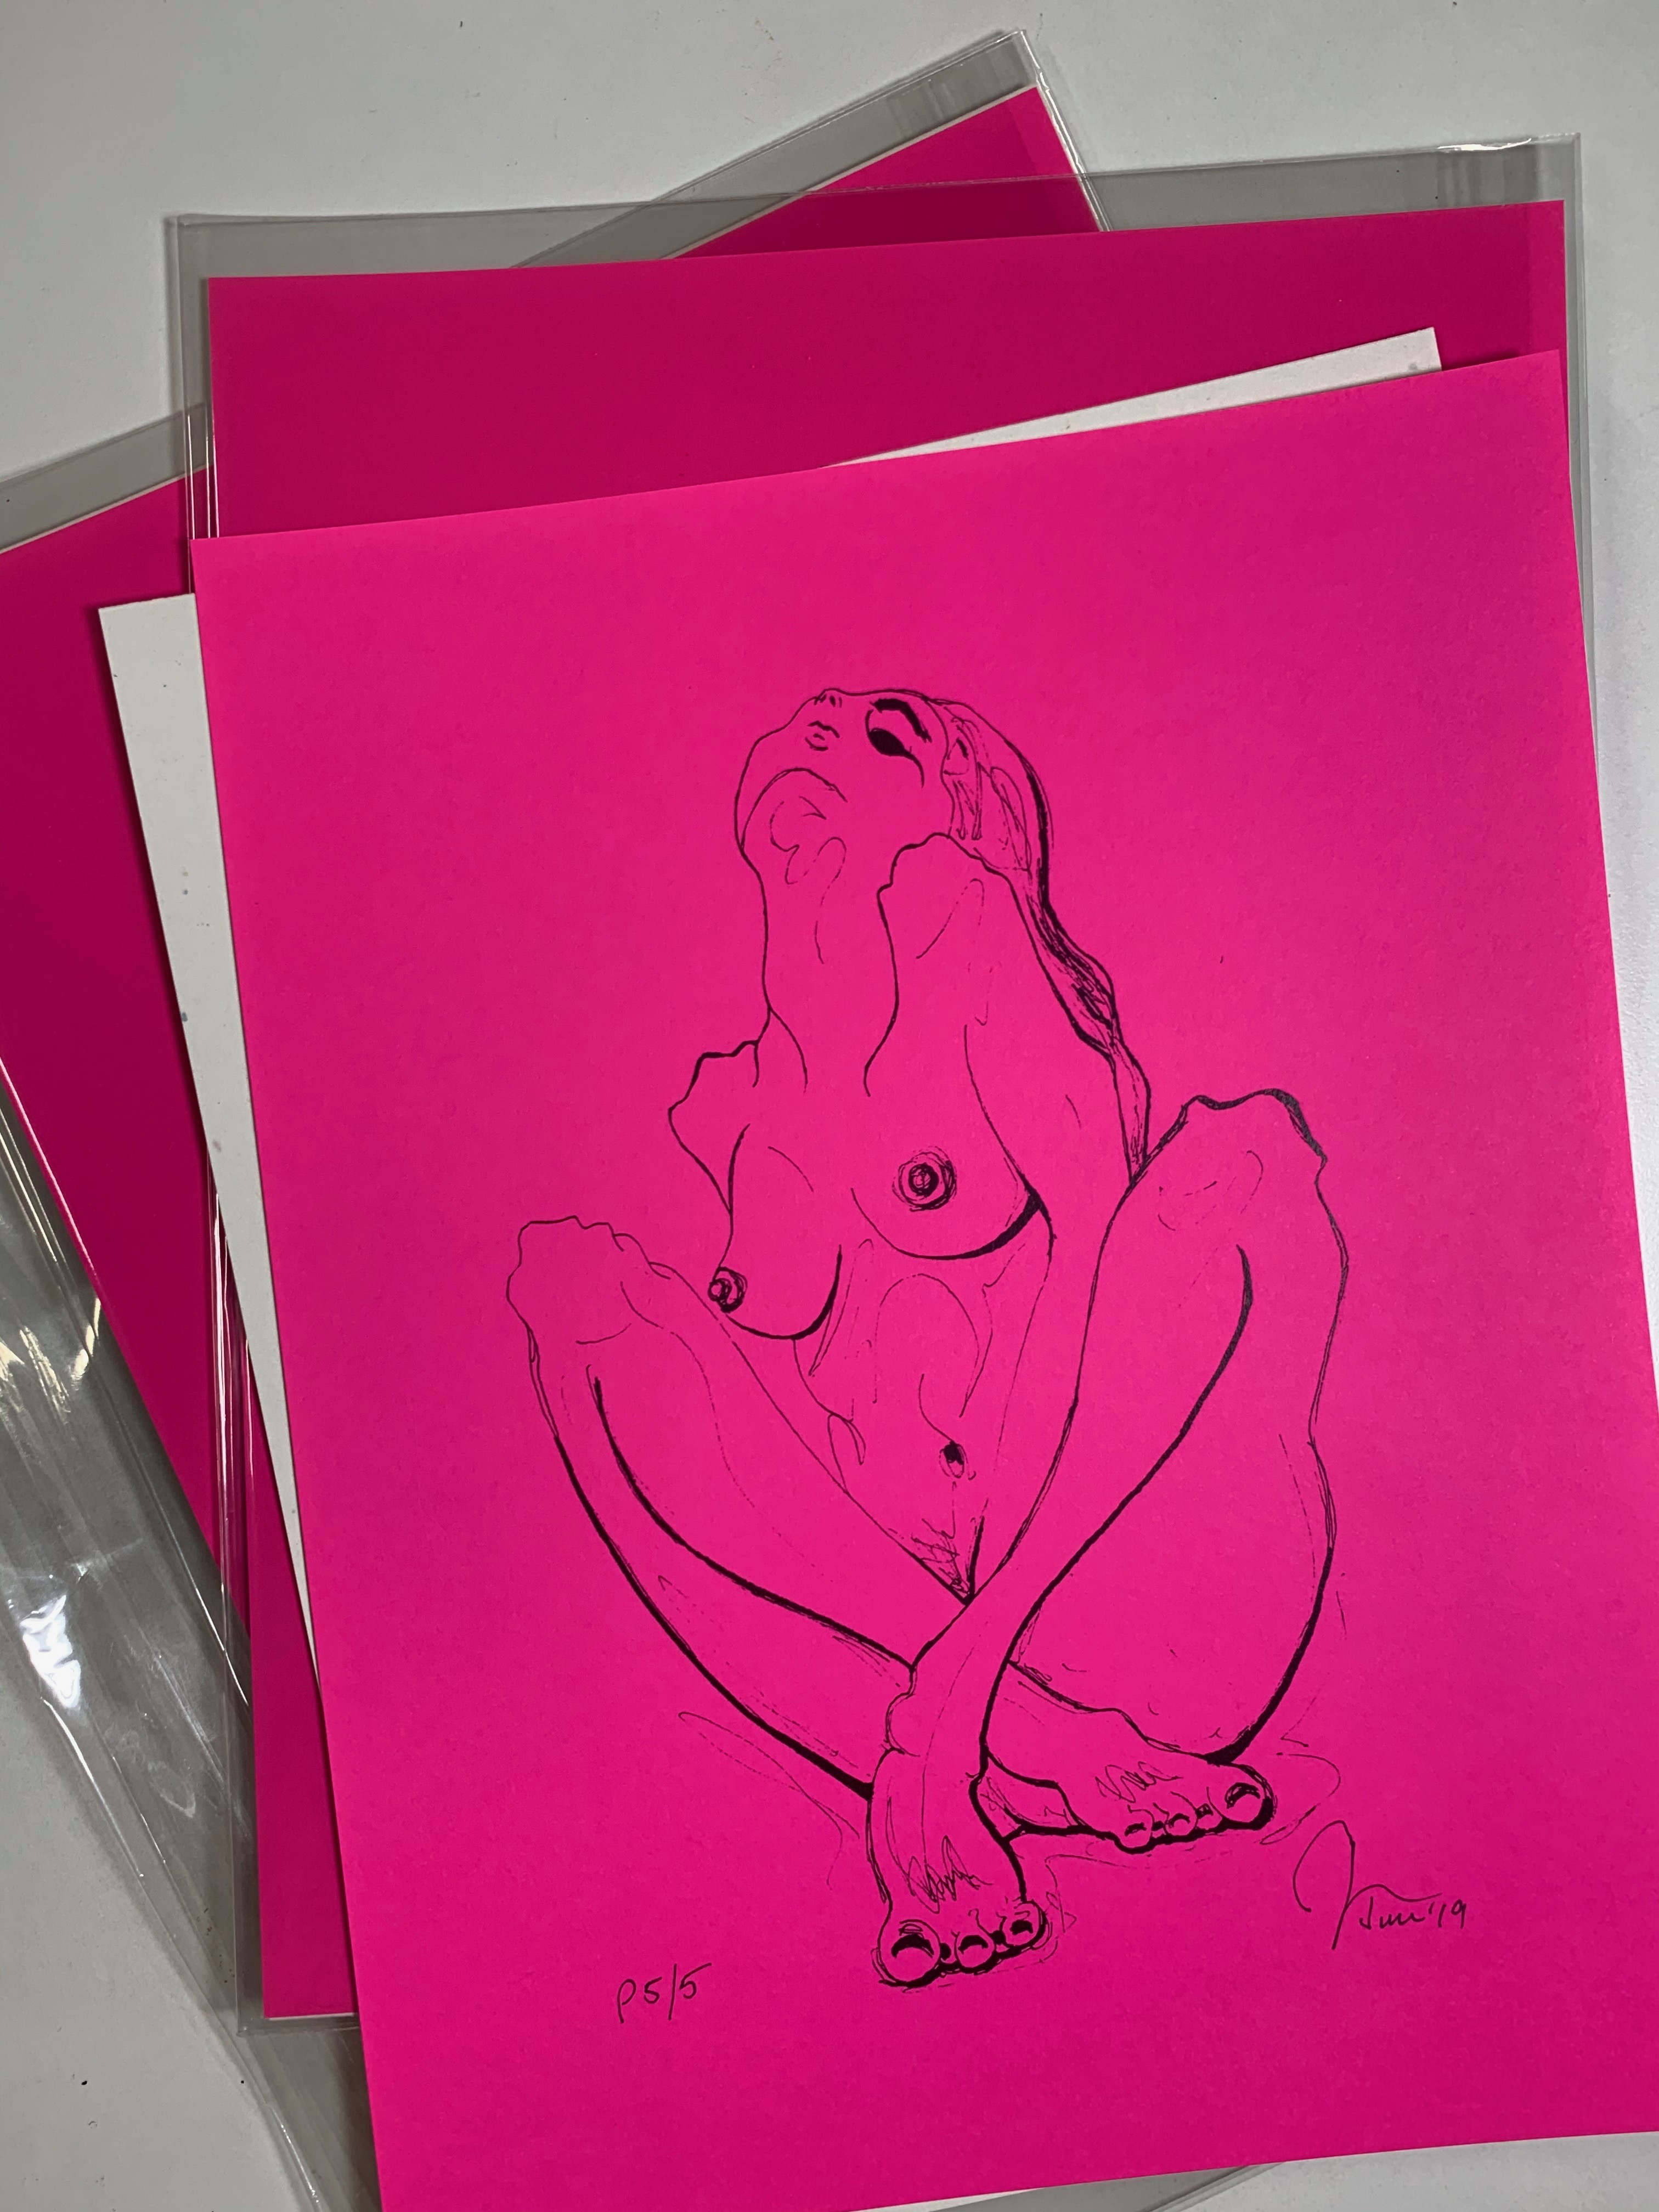 Upwards Energy Hot Pink for sale